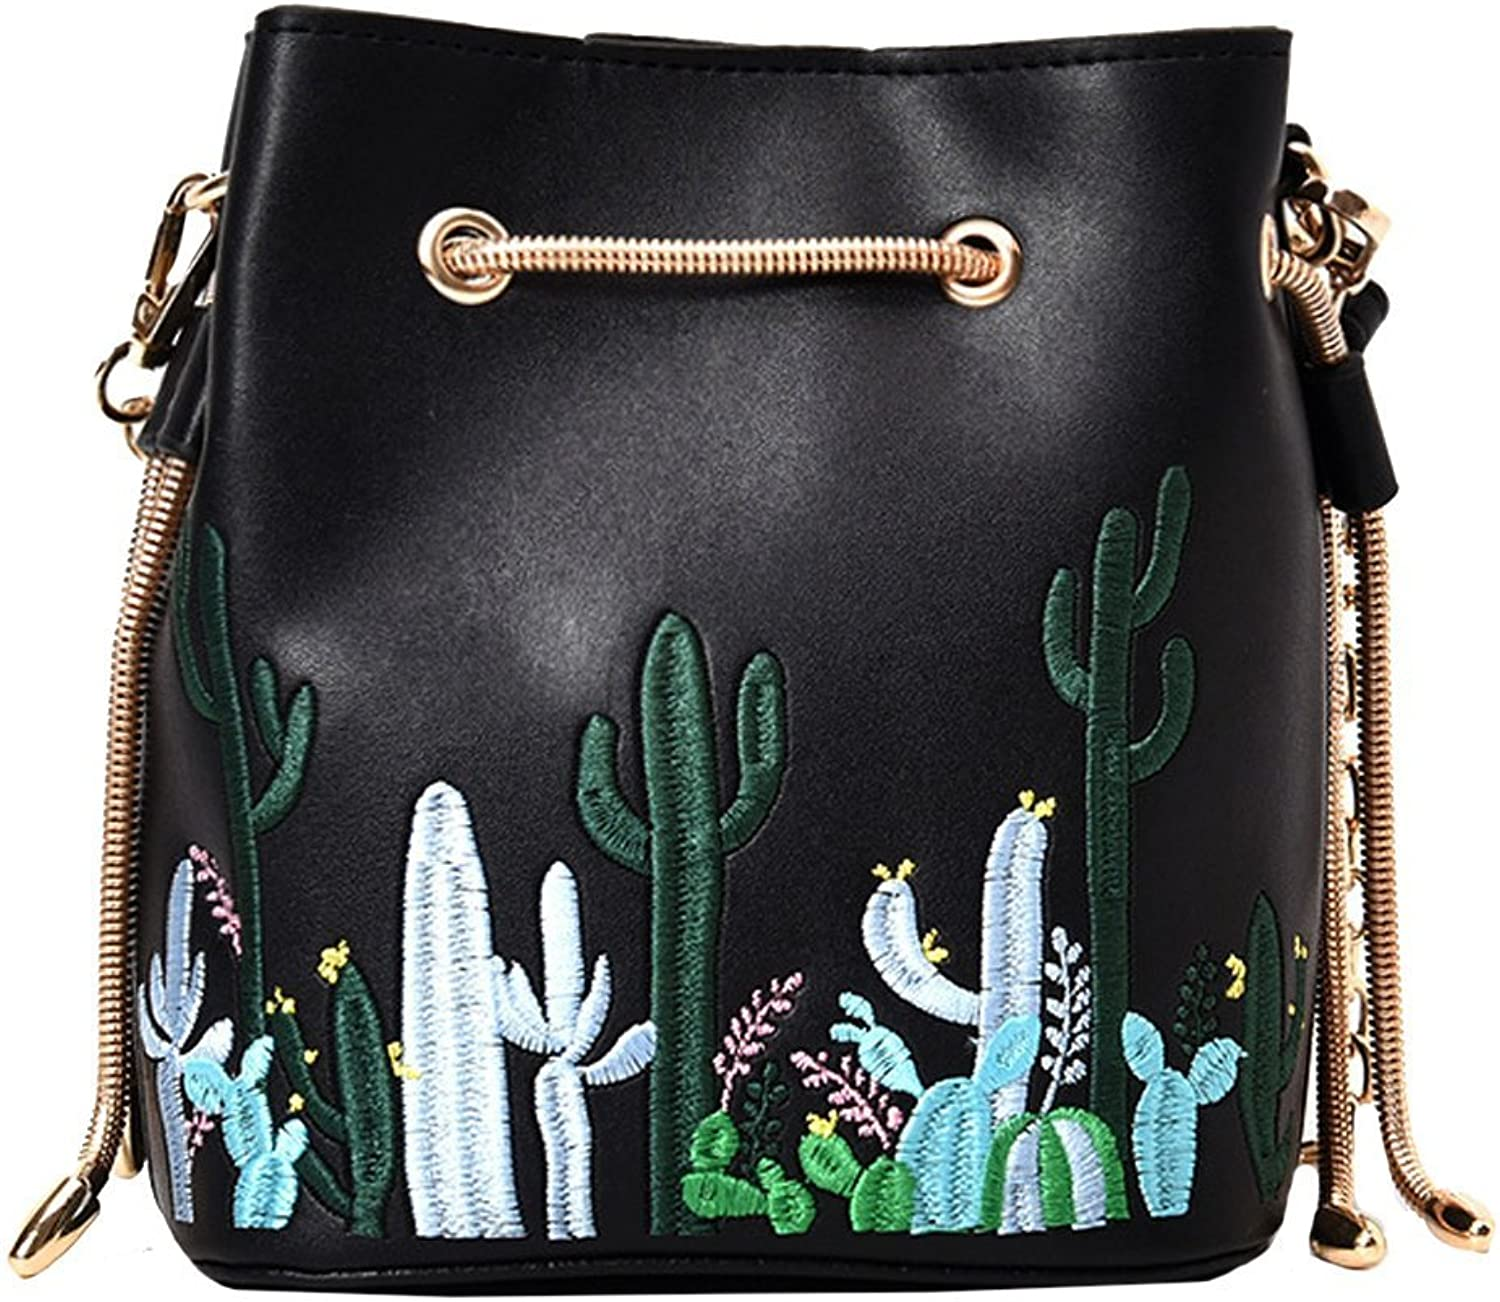 JosephmJohnsonne Womens Mini Bucket Bag Embroidery Cactus Printed Shoulder Bag with Drawstring Chain Crossbody Bag